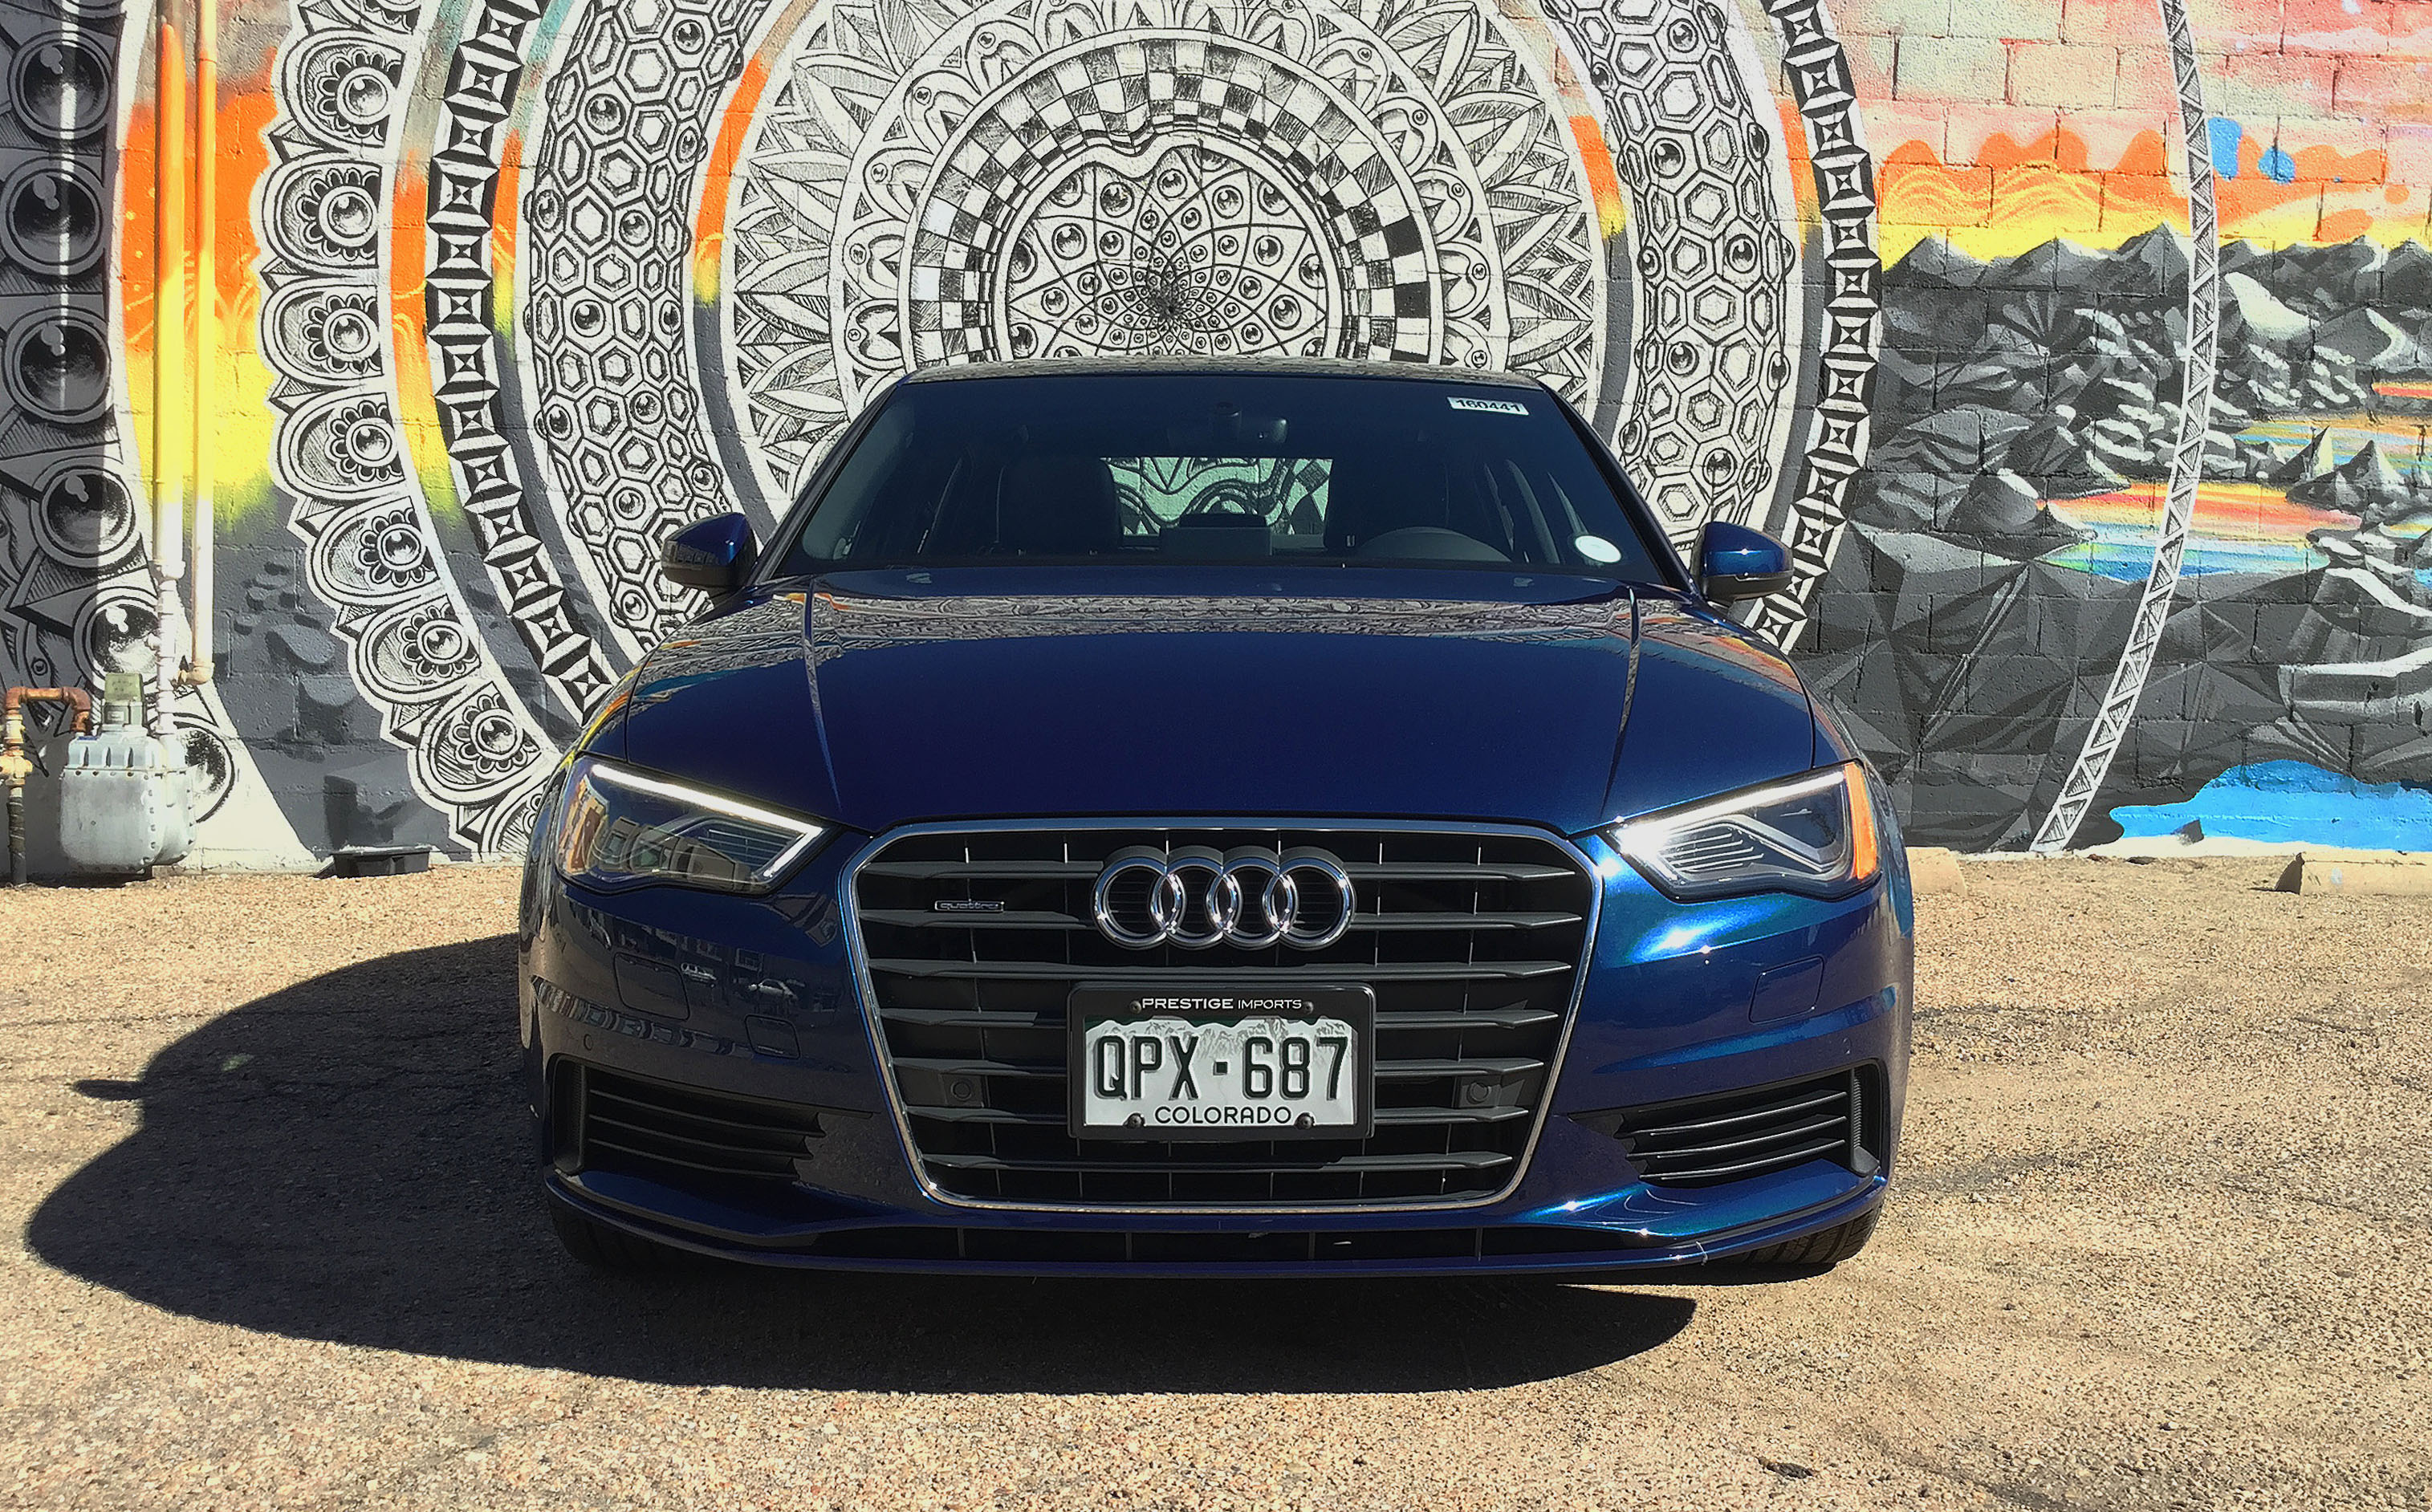 Denver s RiNo Art District and the Audi A3